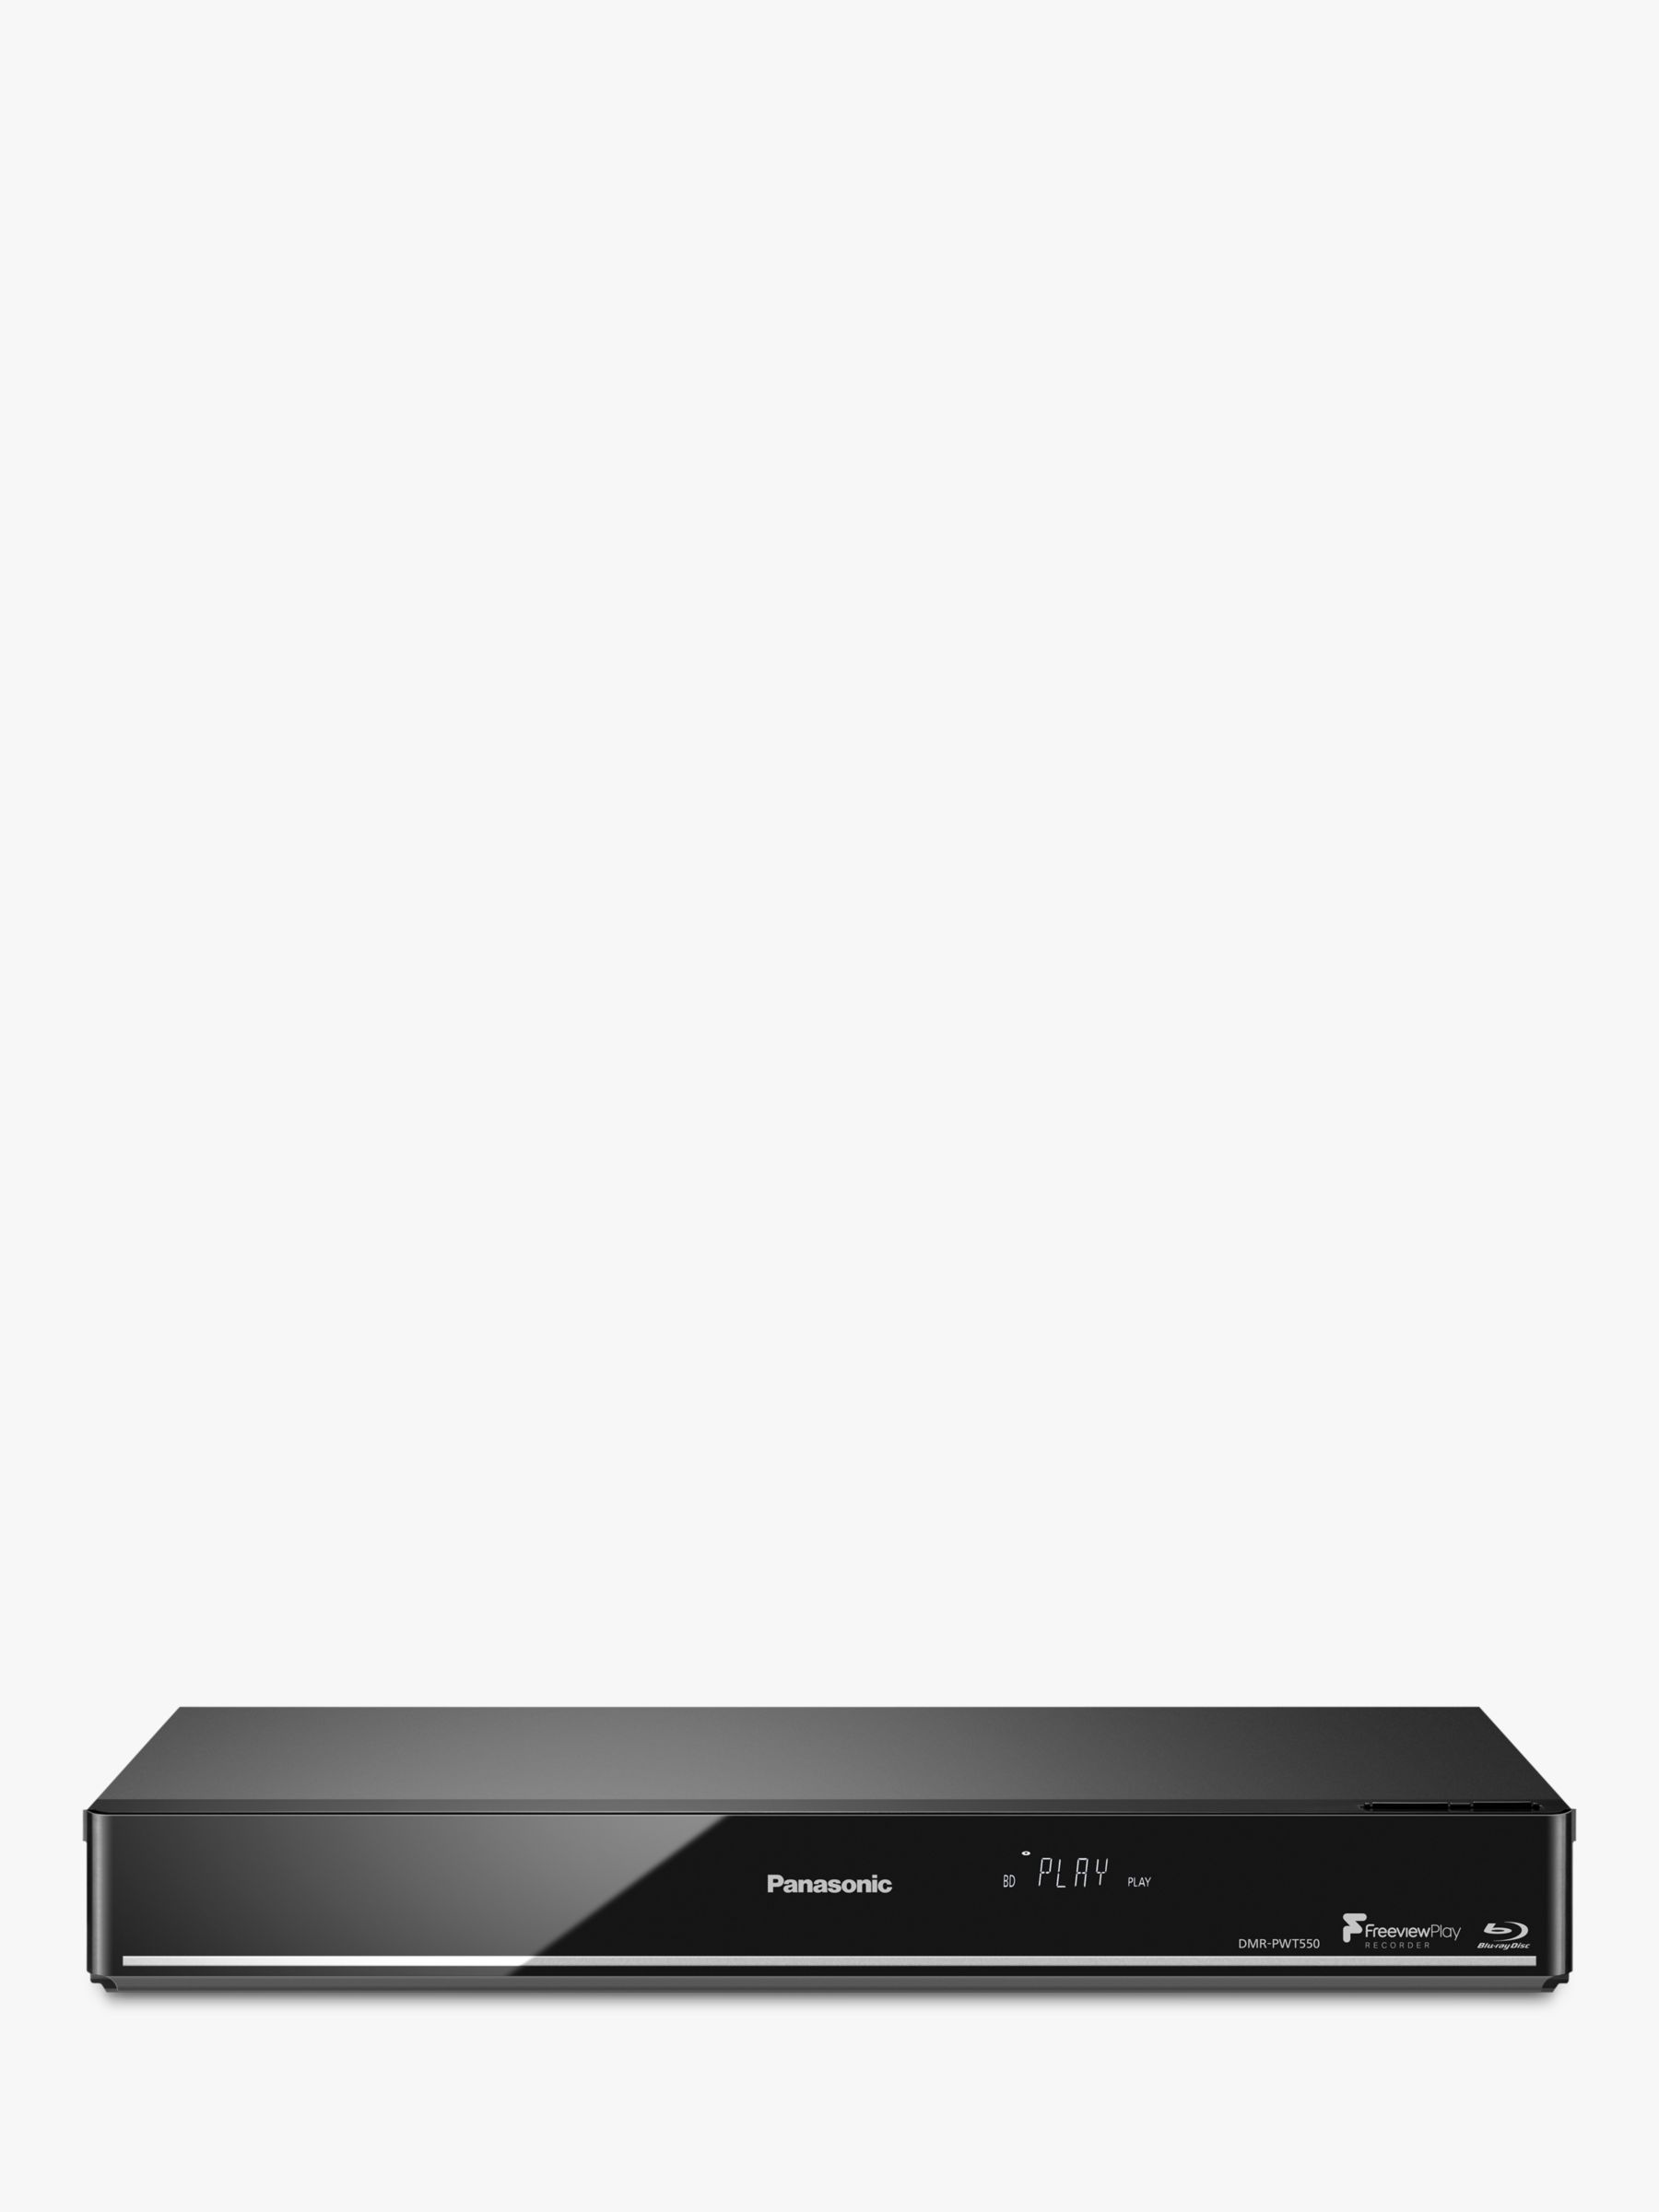 Panasonic DMR-PWT550EB Smart 3D 4K Upscaling Blu-ray/DVD Player with HDD  Recorder & Freeview Play